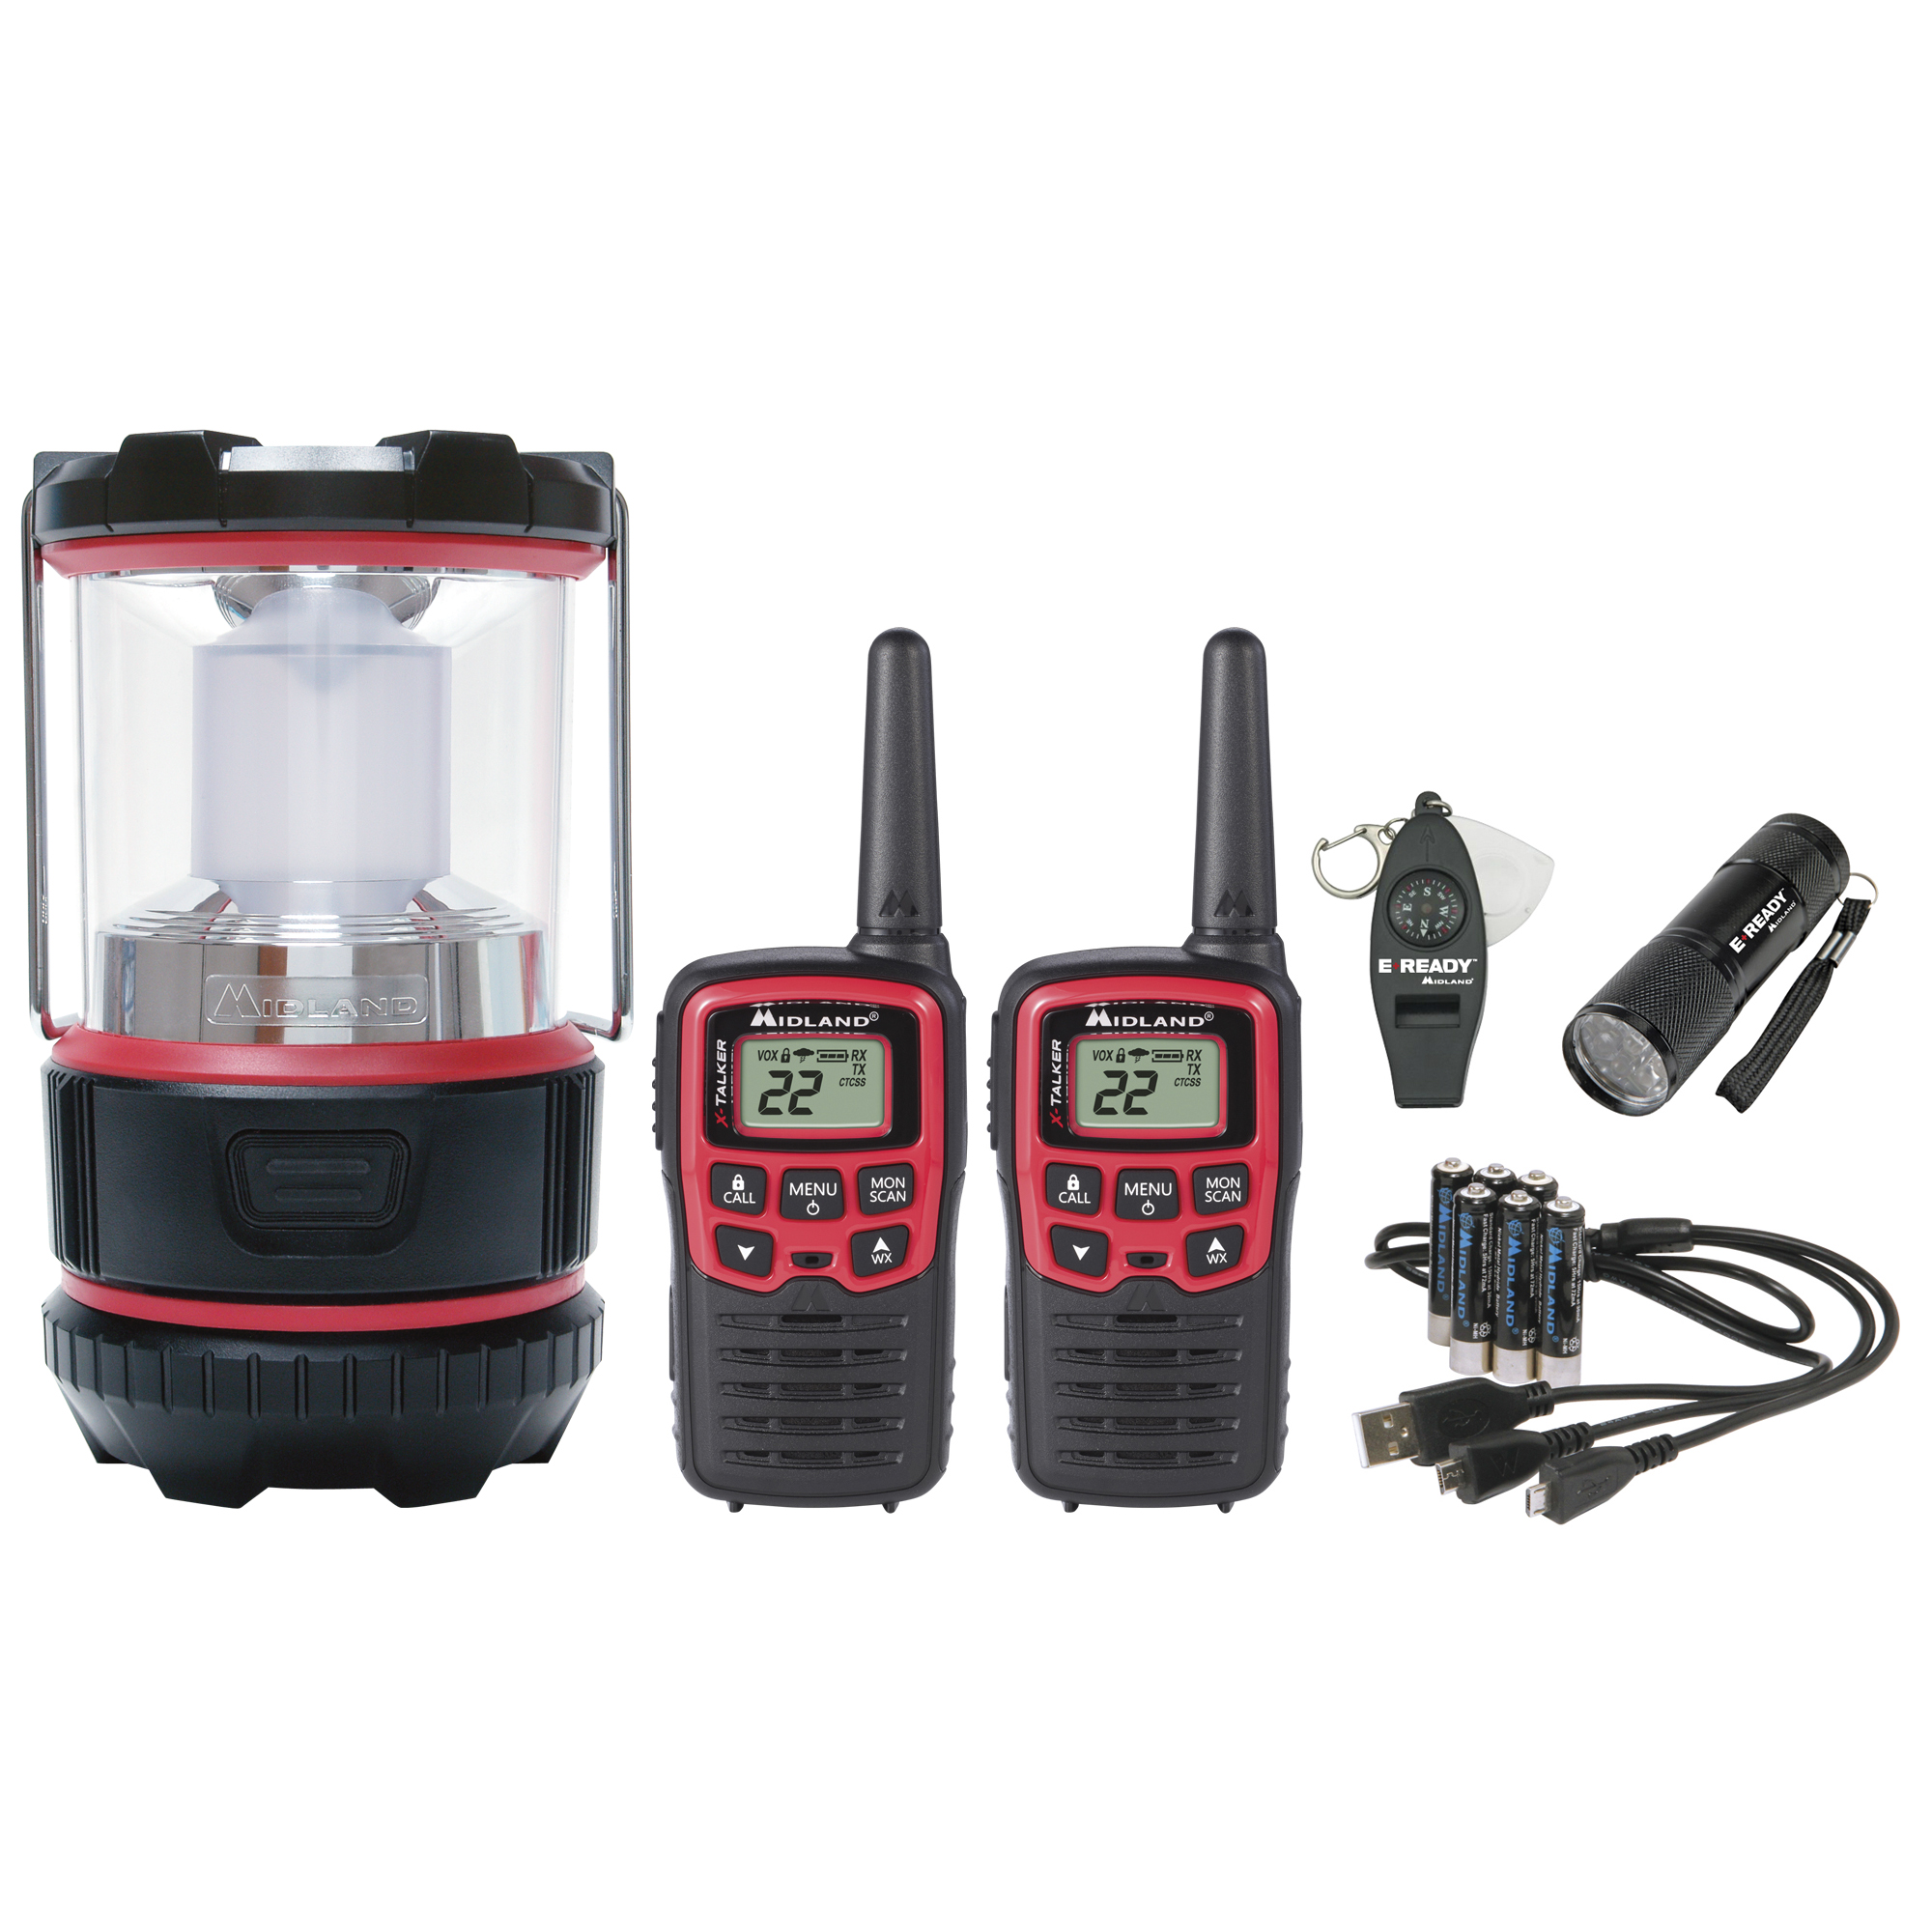 EX500VP E+Ready Lantern Kit